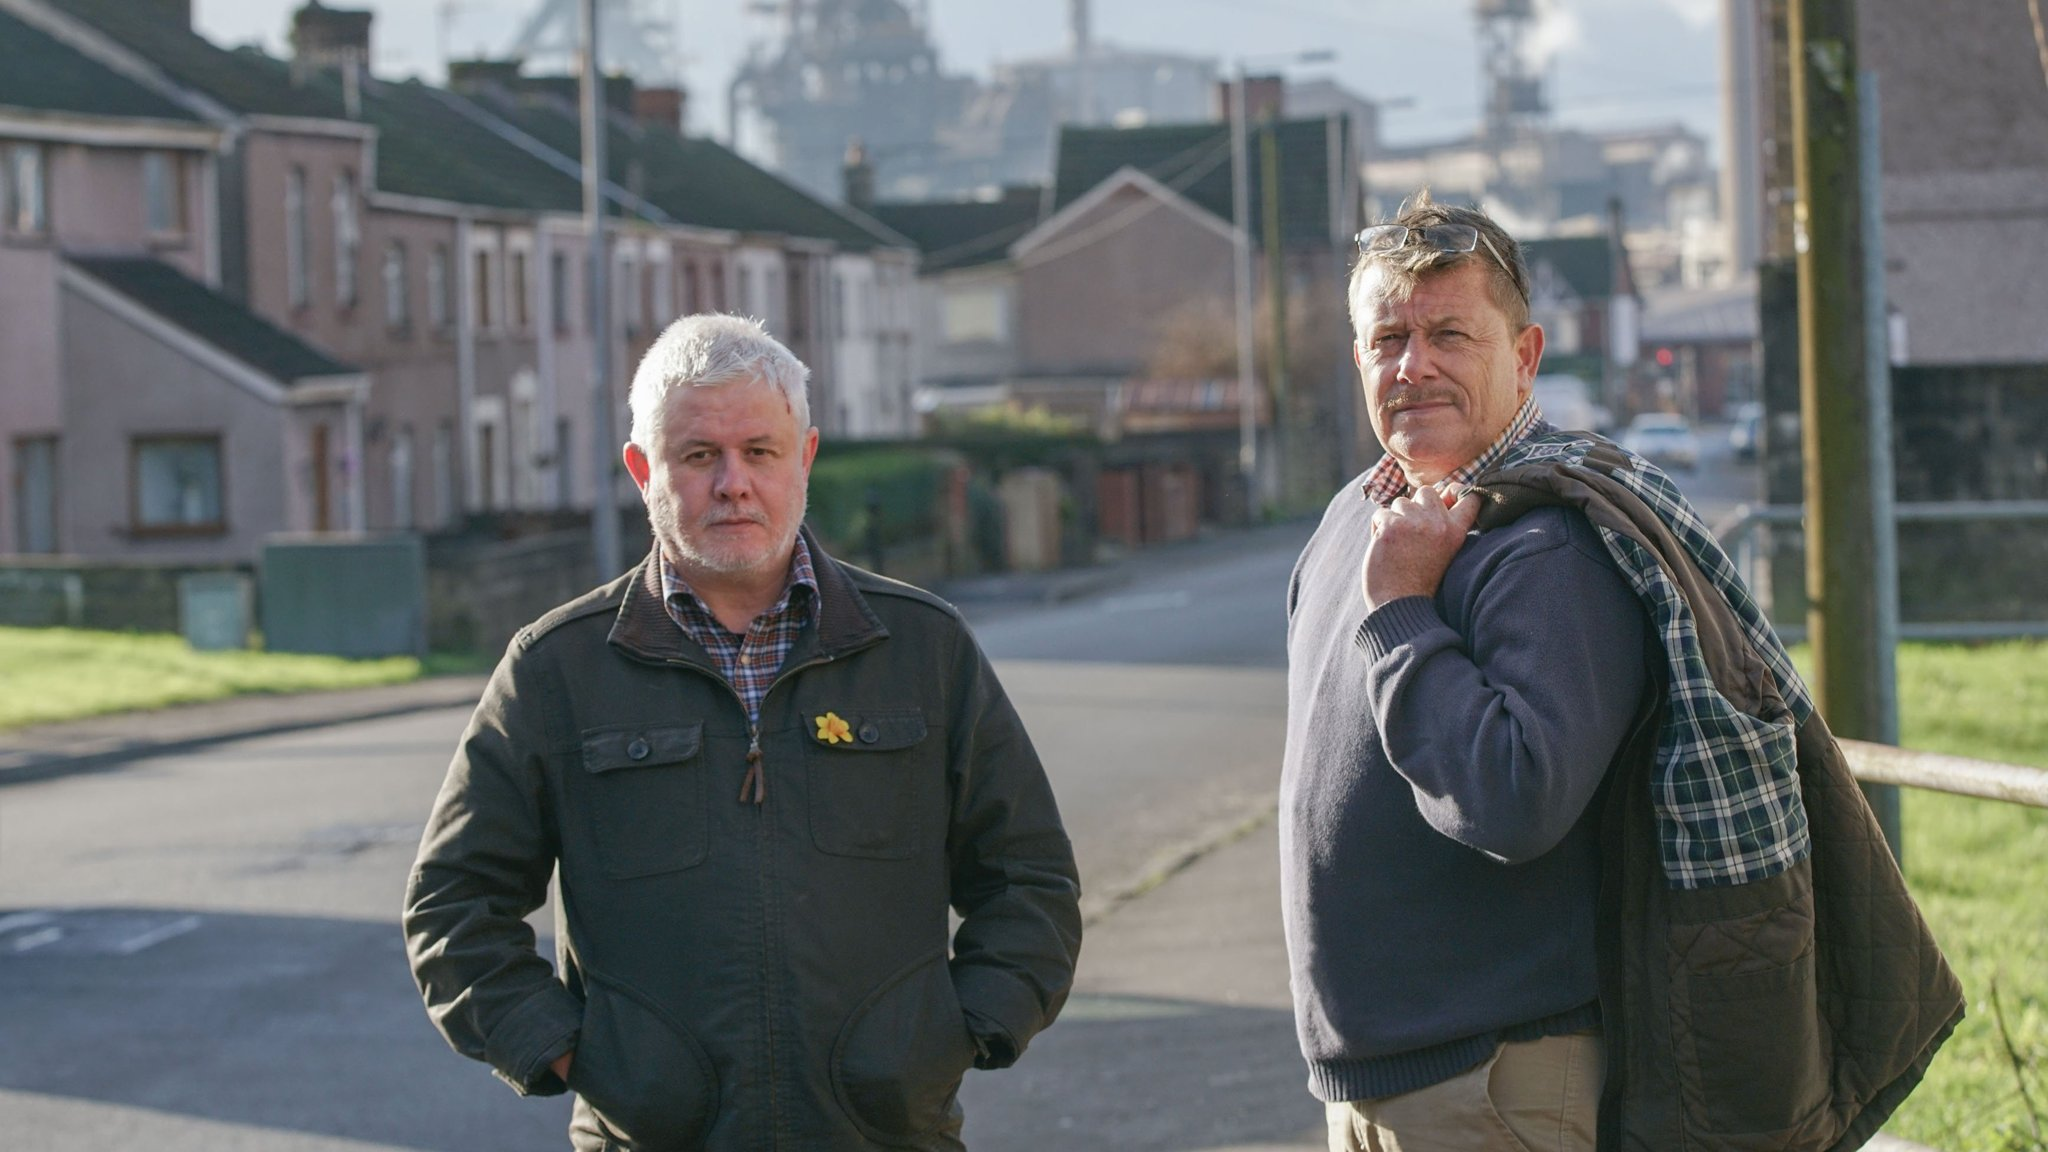 Steelworkers Lured Into Transferring Millions Out Of